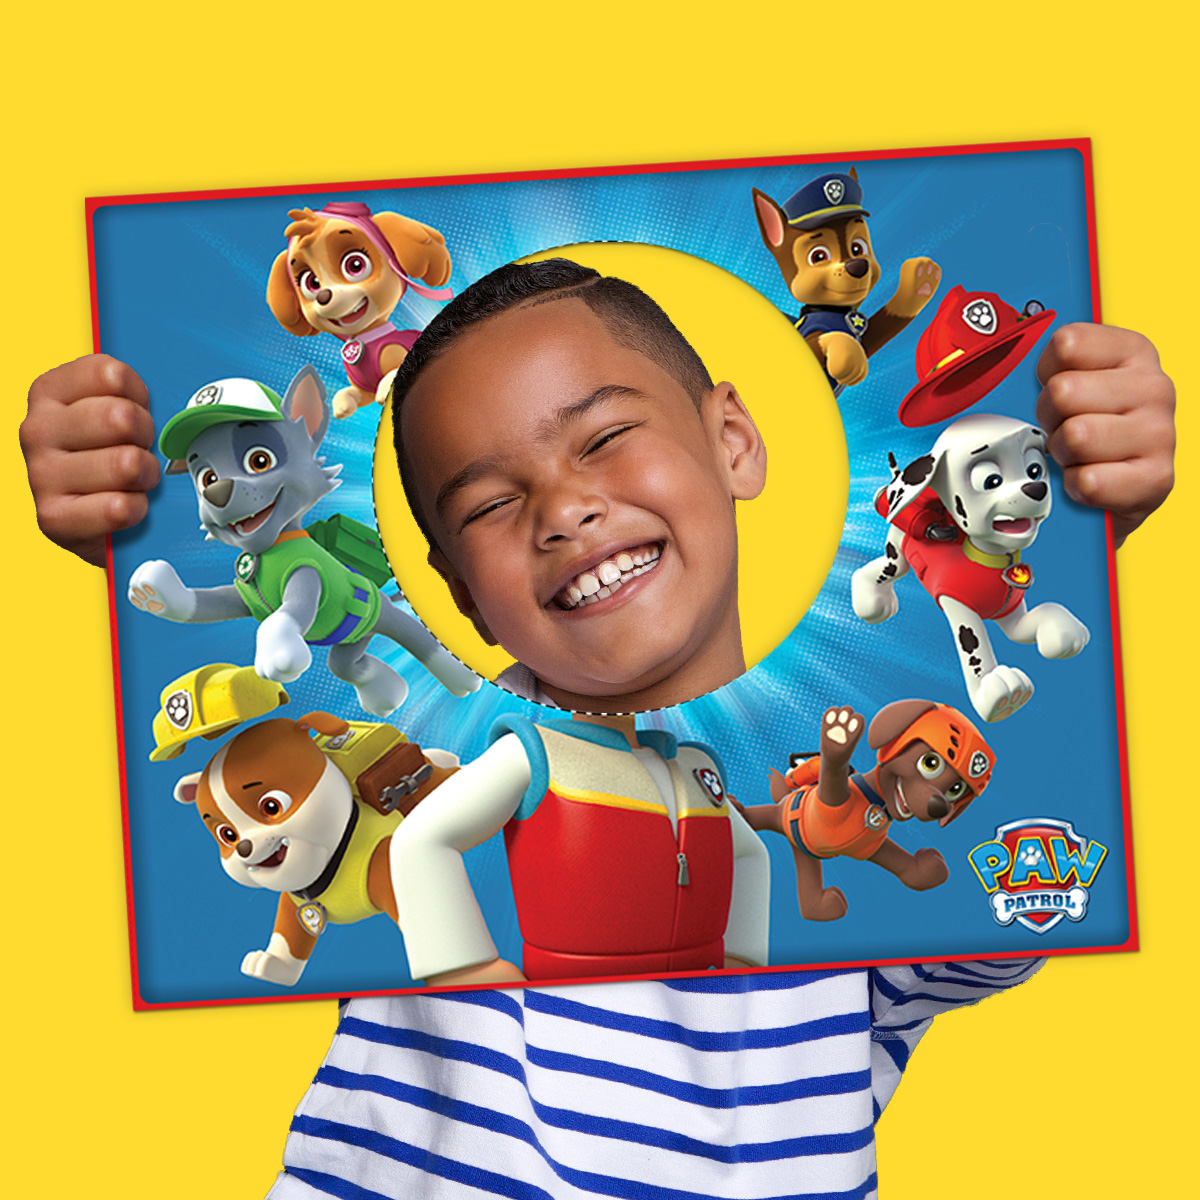 PAW Patrol Poster Assemble This Printable So Birthday Party